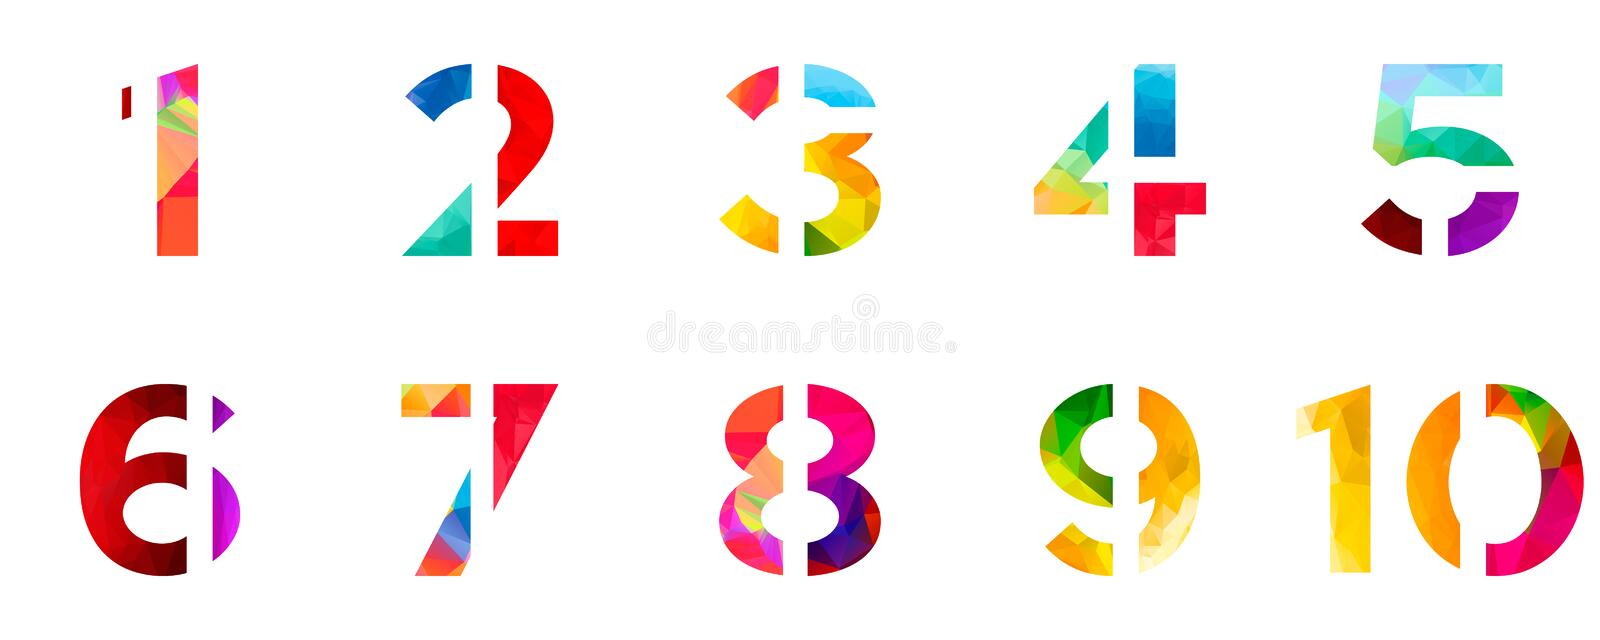 Abstract bright rainbow polygon number alphabet colorful font style. one two three four five six seven eight nine ten zero digits. vector illustration